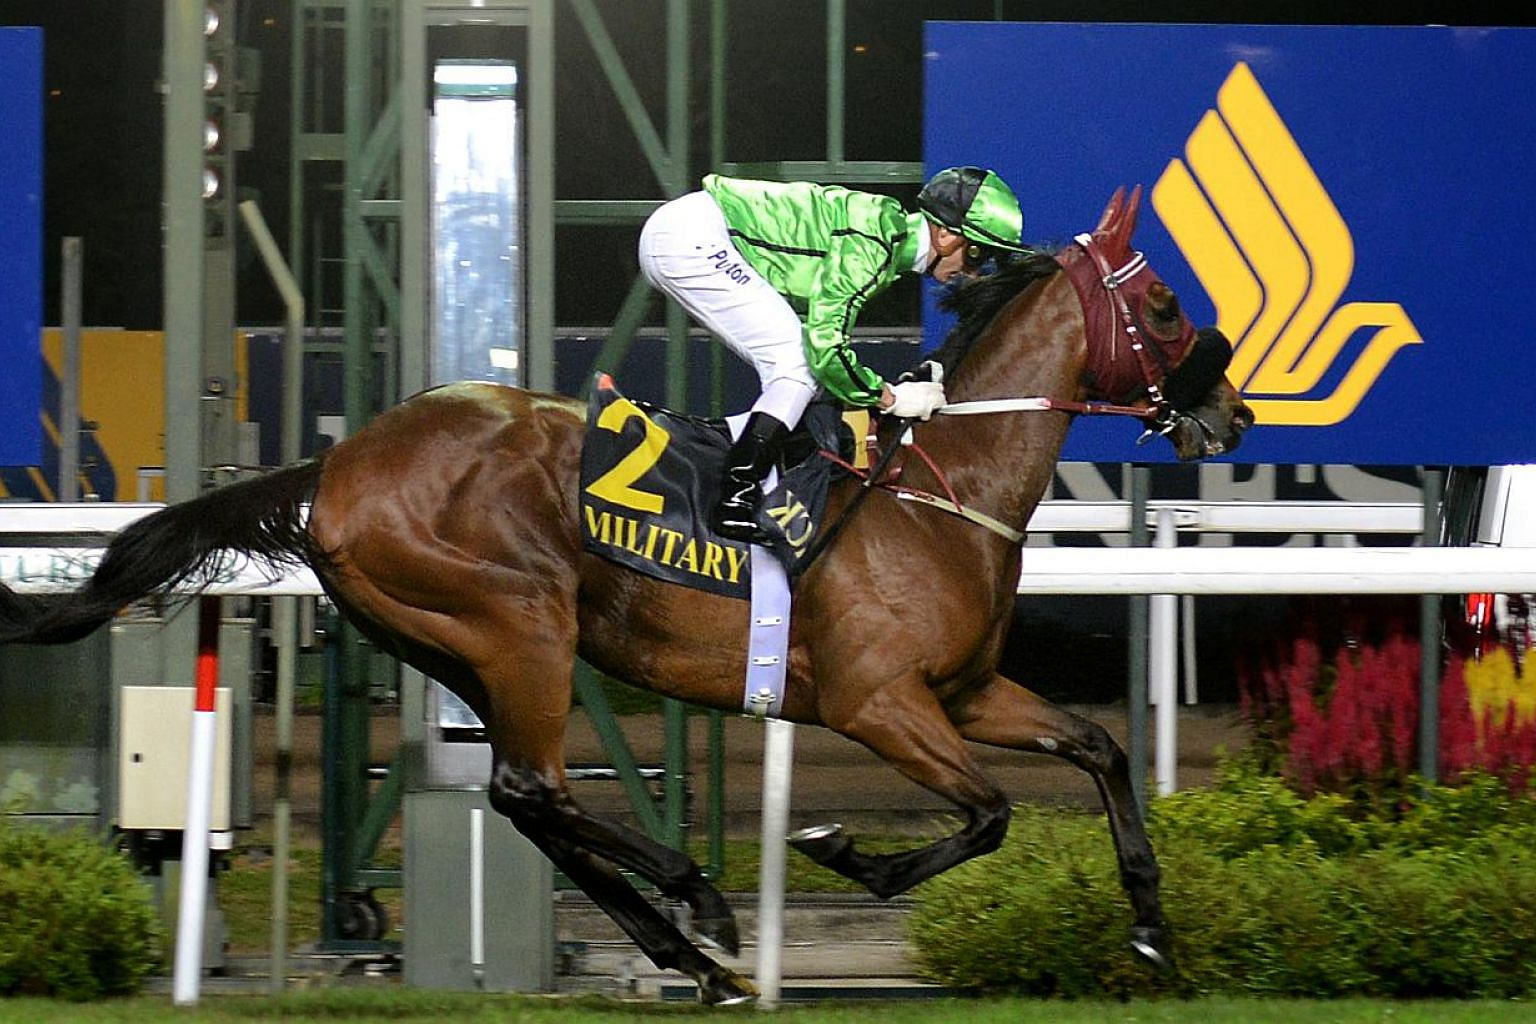 Race horse Military Attack (with jockey Zac Purton astride) emerged the champion of the Singapore Airlines International (SIA) Cup held at the Singapore Racecourse in Kranji on May 19, 2013. Military Attack will get to startin barrier 3 for the